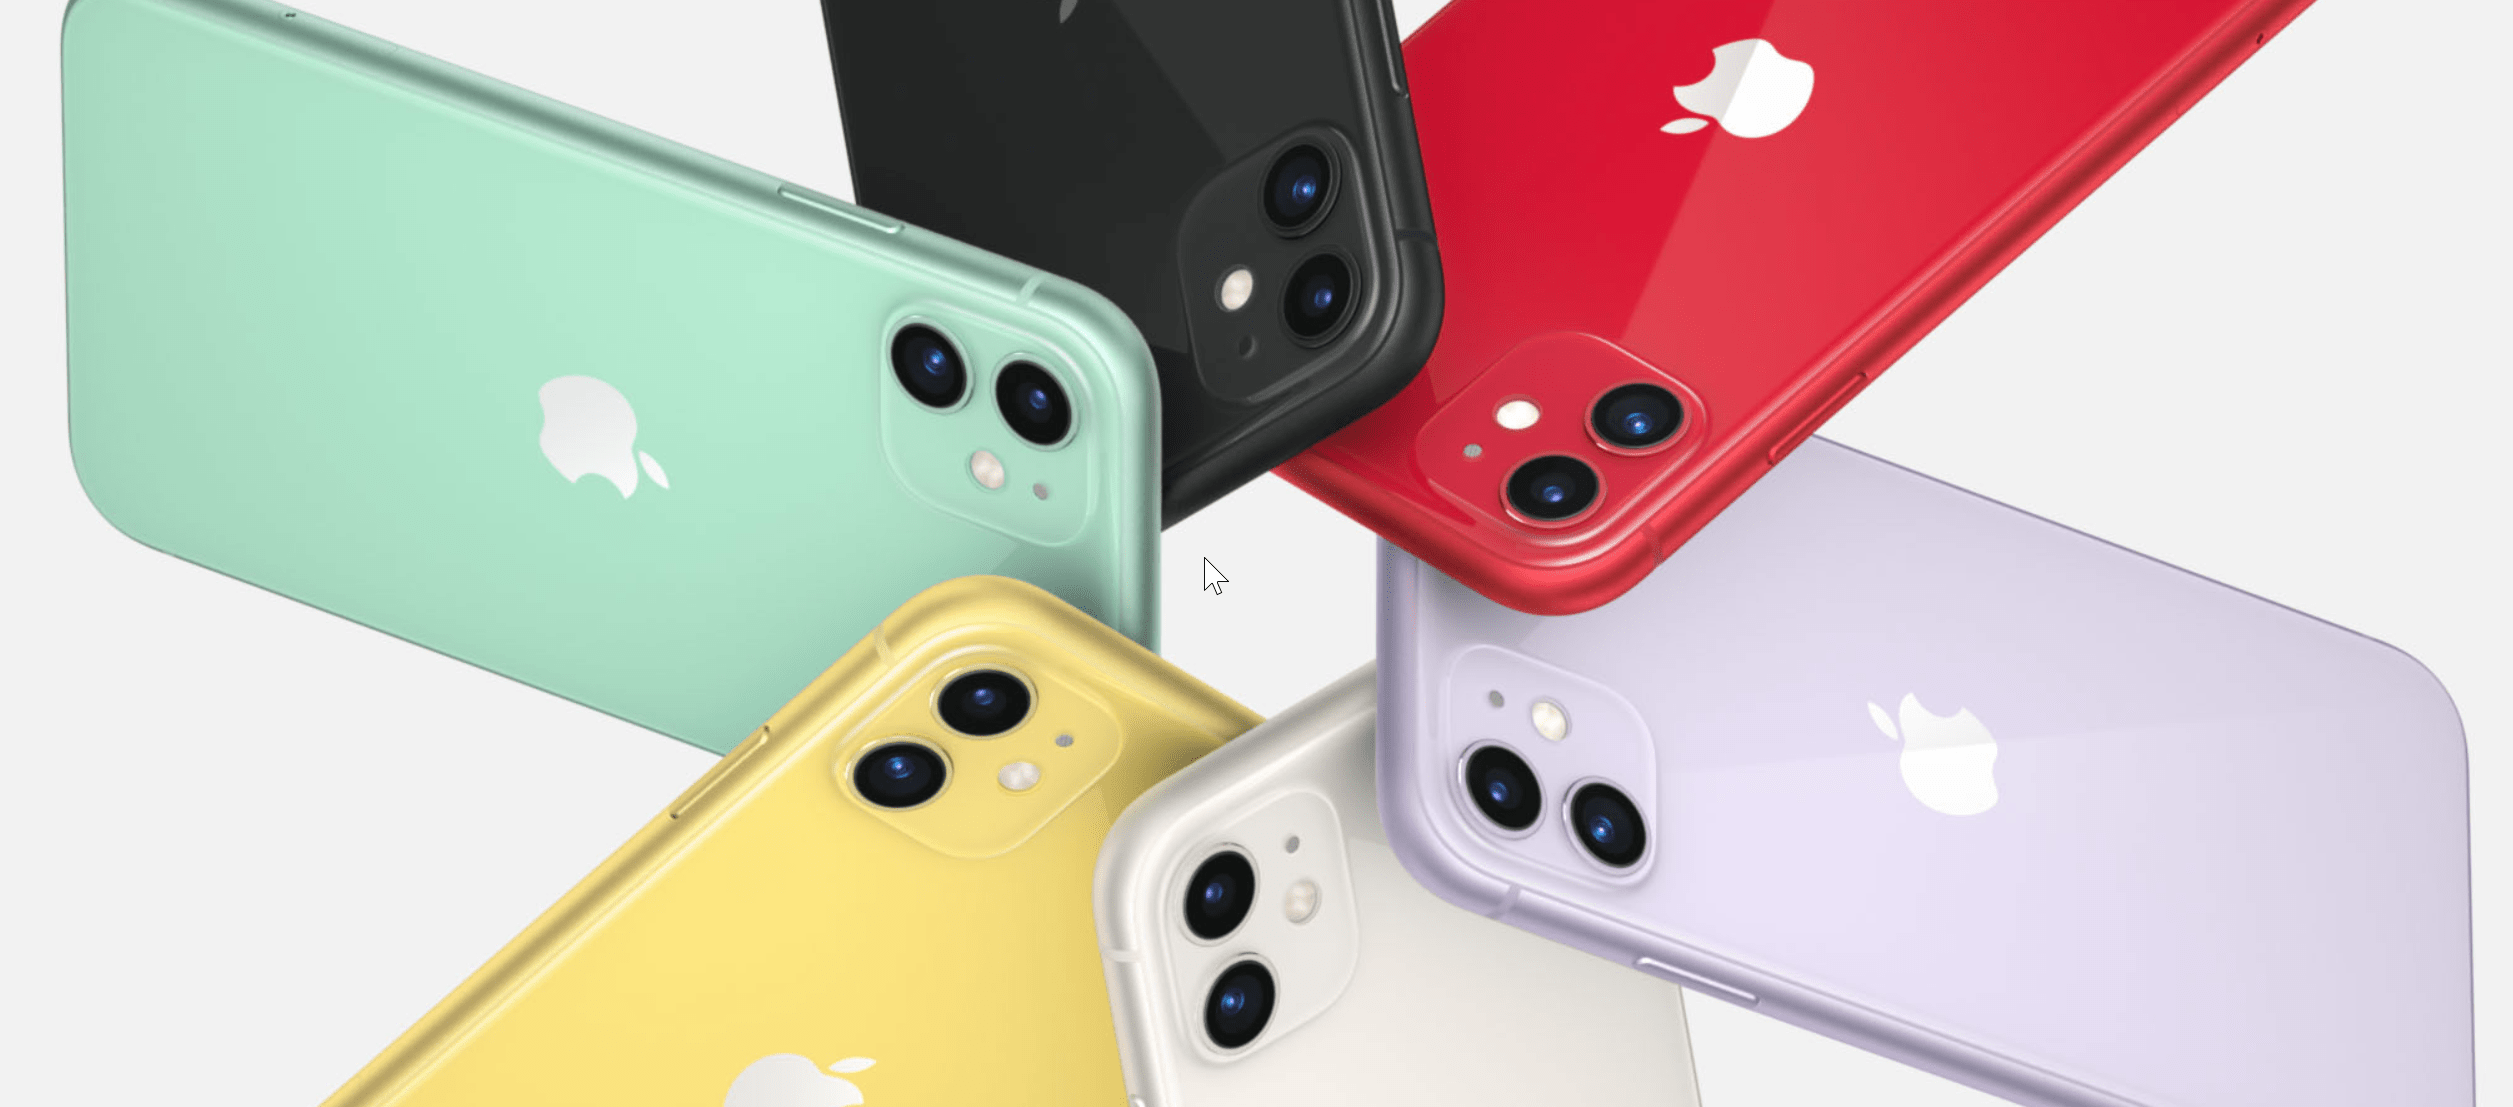 Iphone 11 Vs Iphone Xr Quelles Differences Pour Les